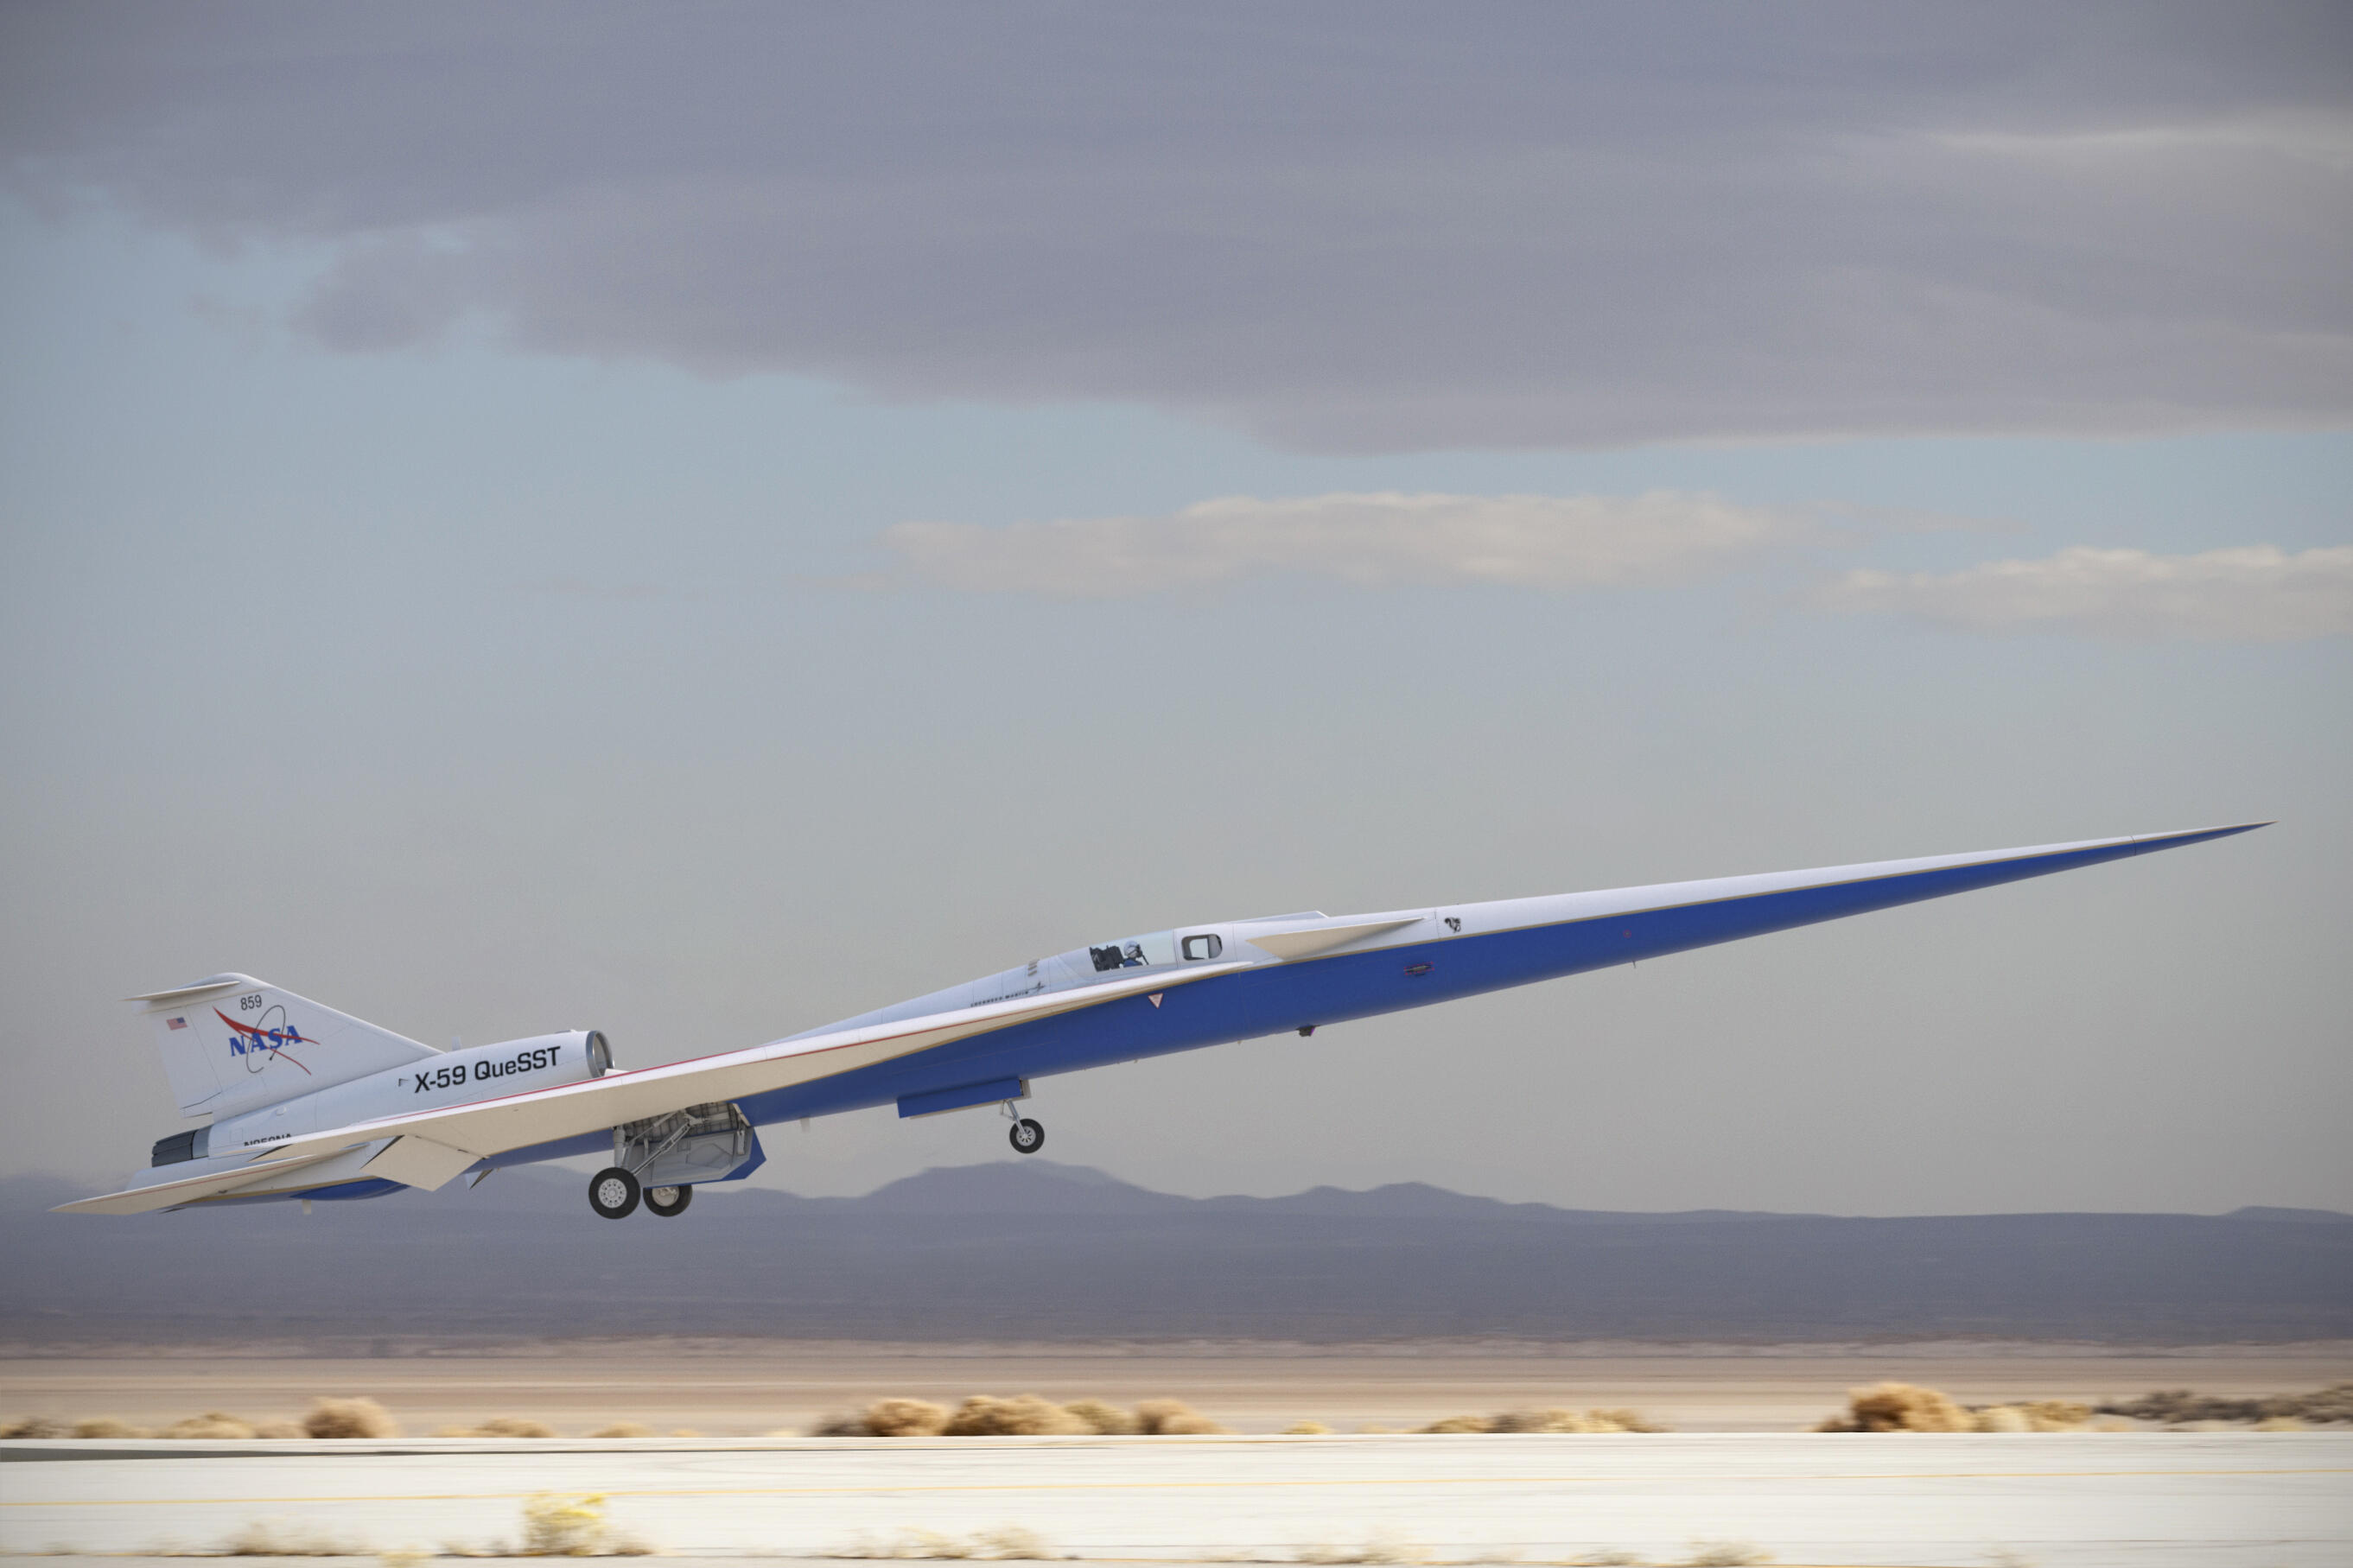 A mock-up of the X-59 aircraft taking off